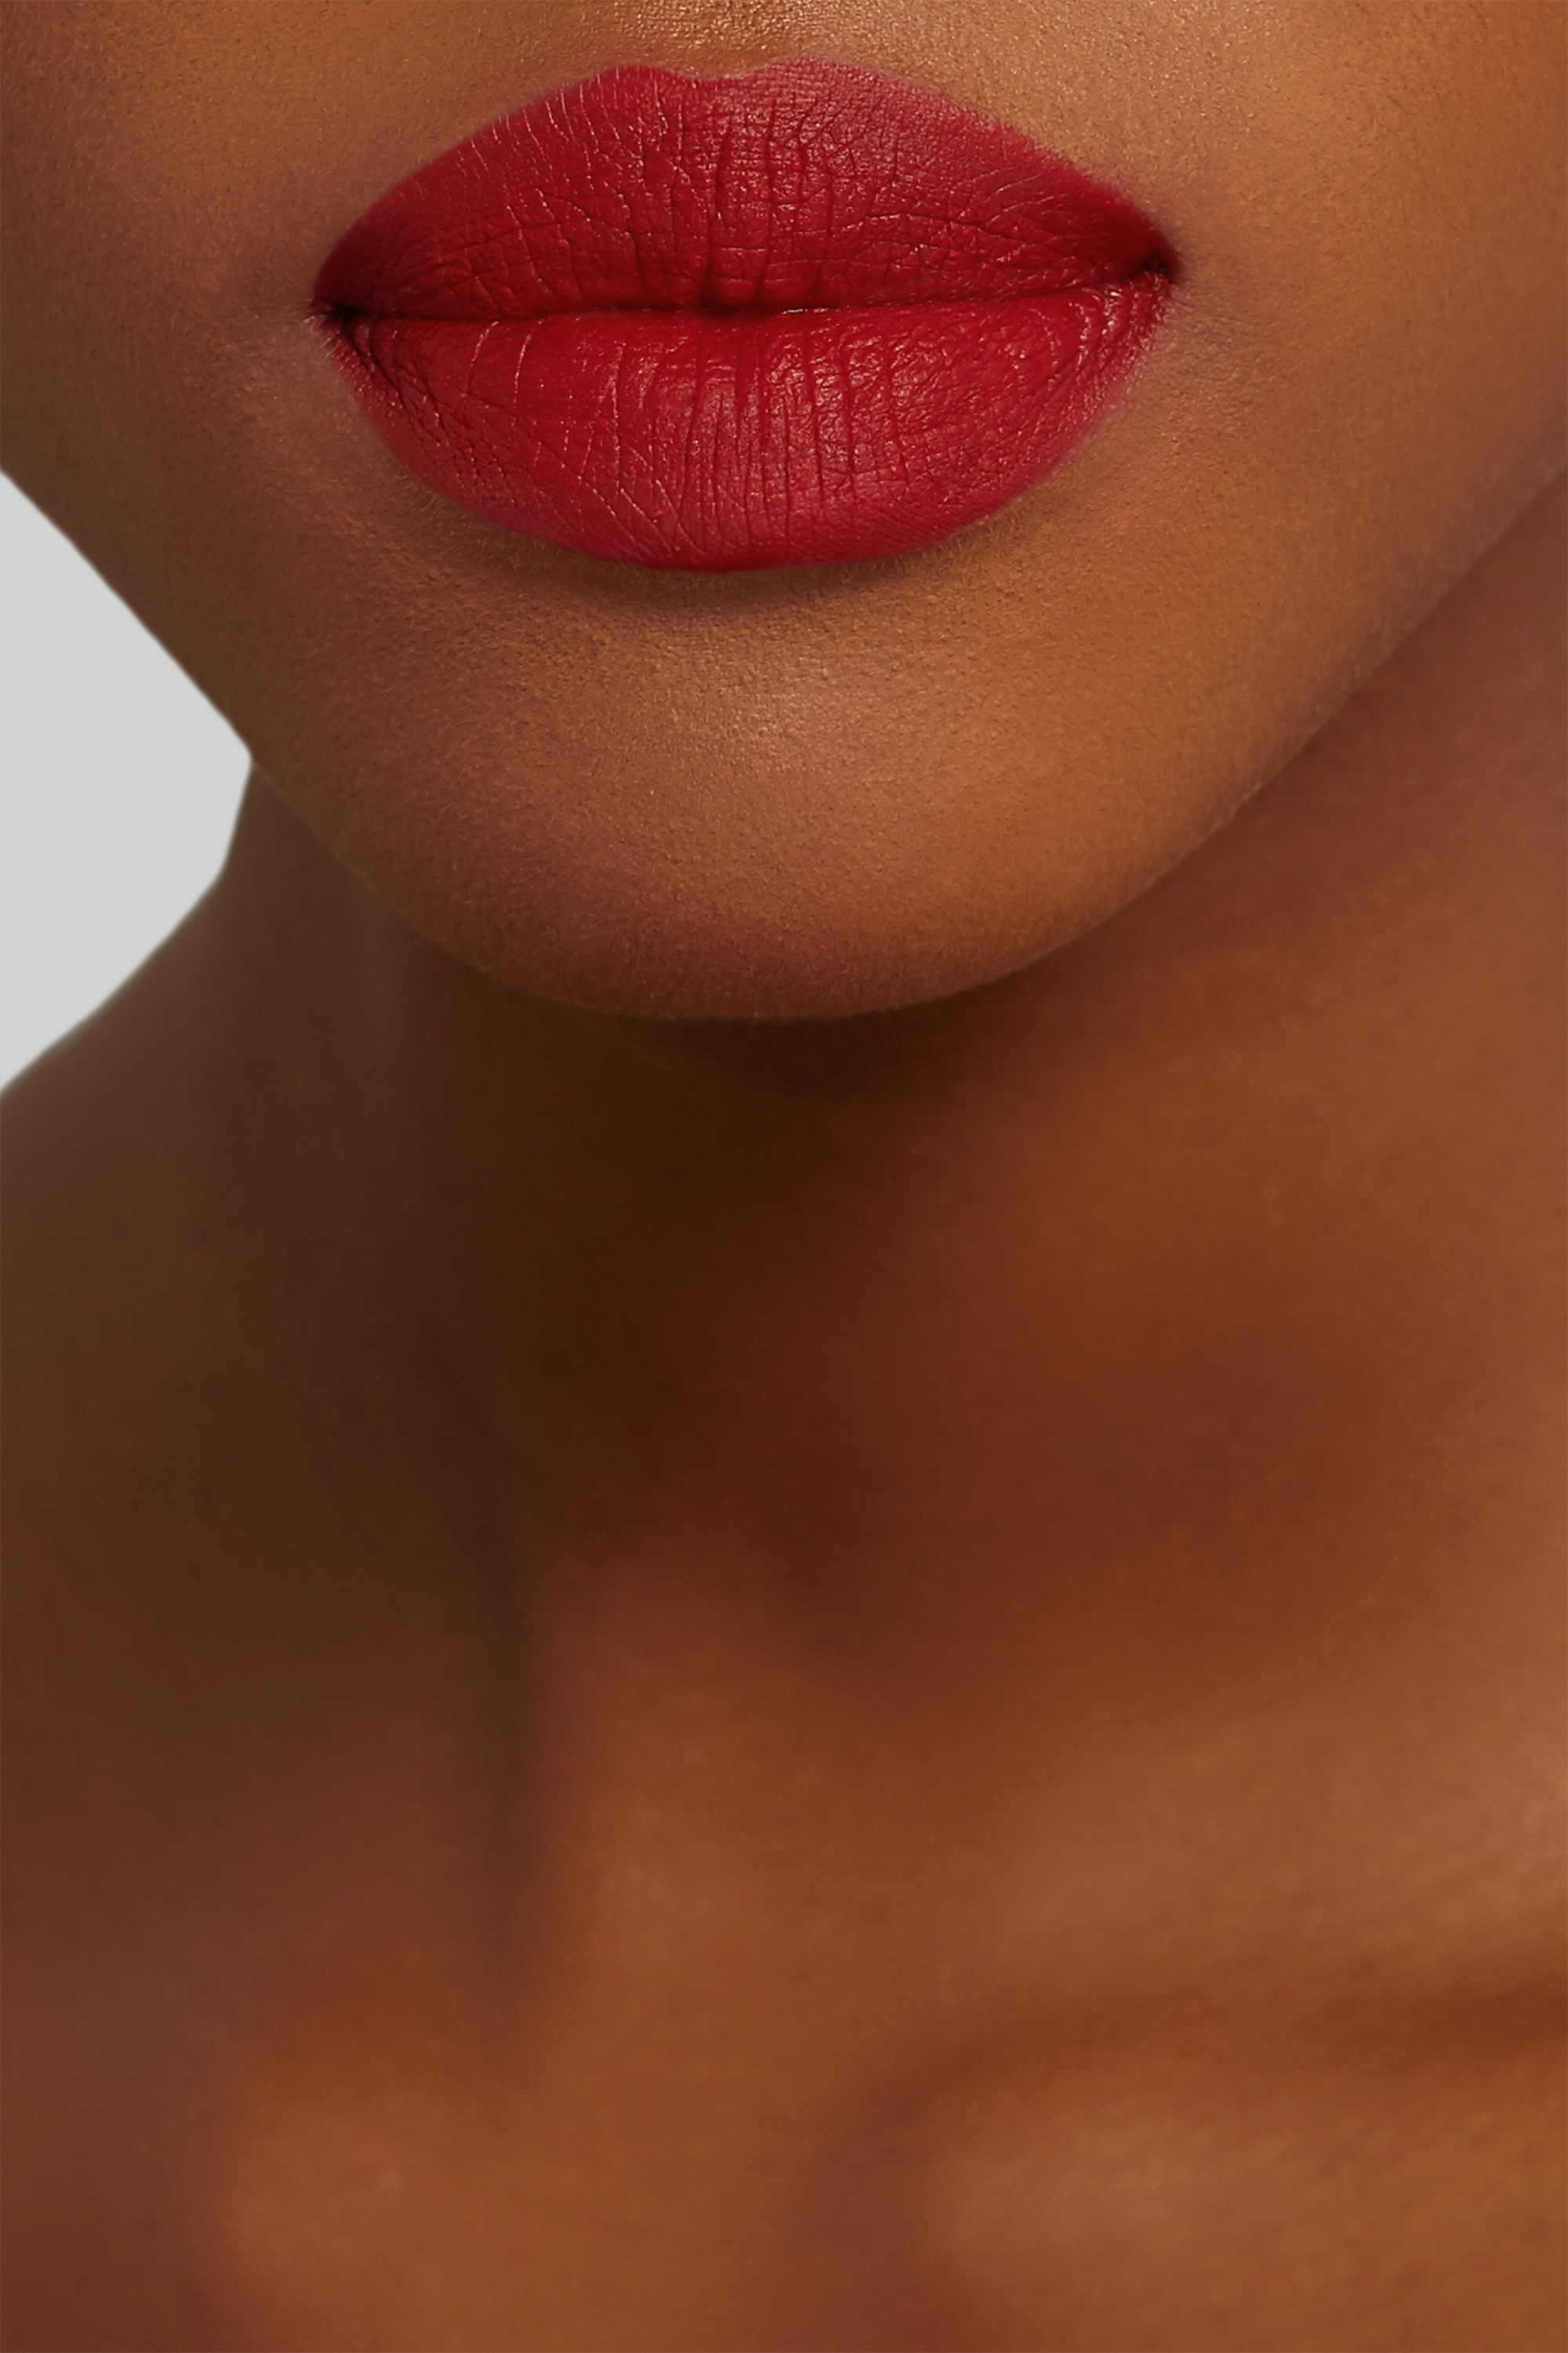 NARS Lipstick - Inappropriate Red